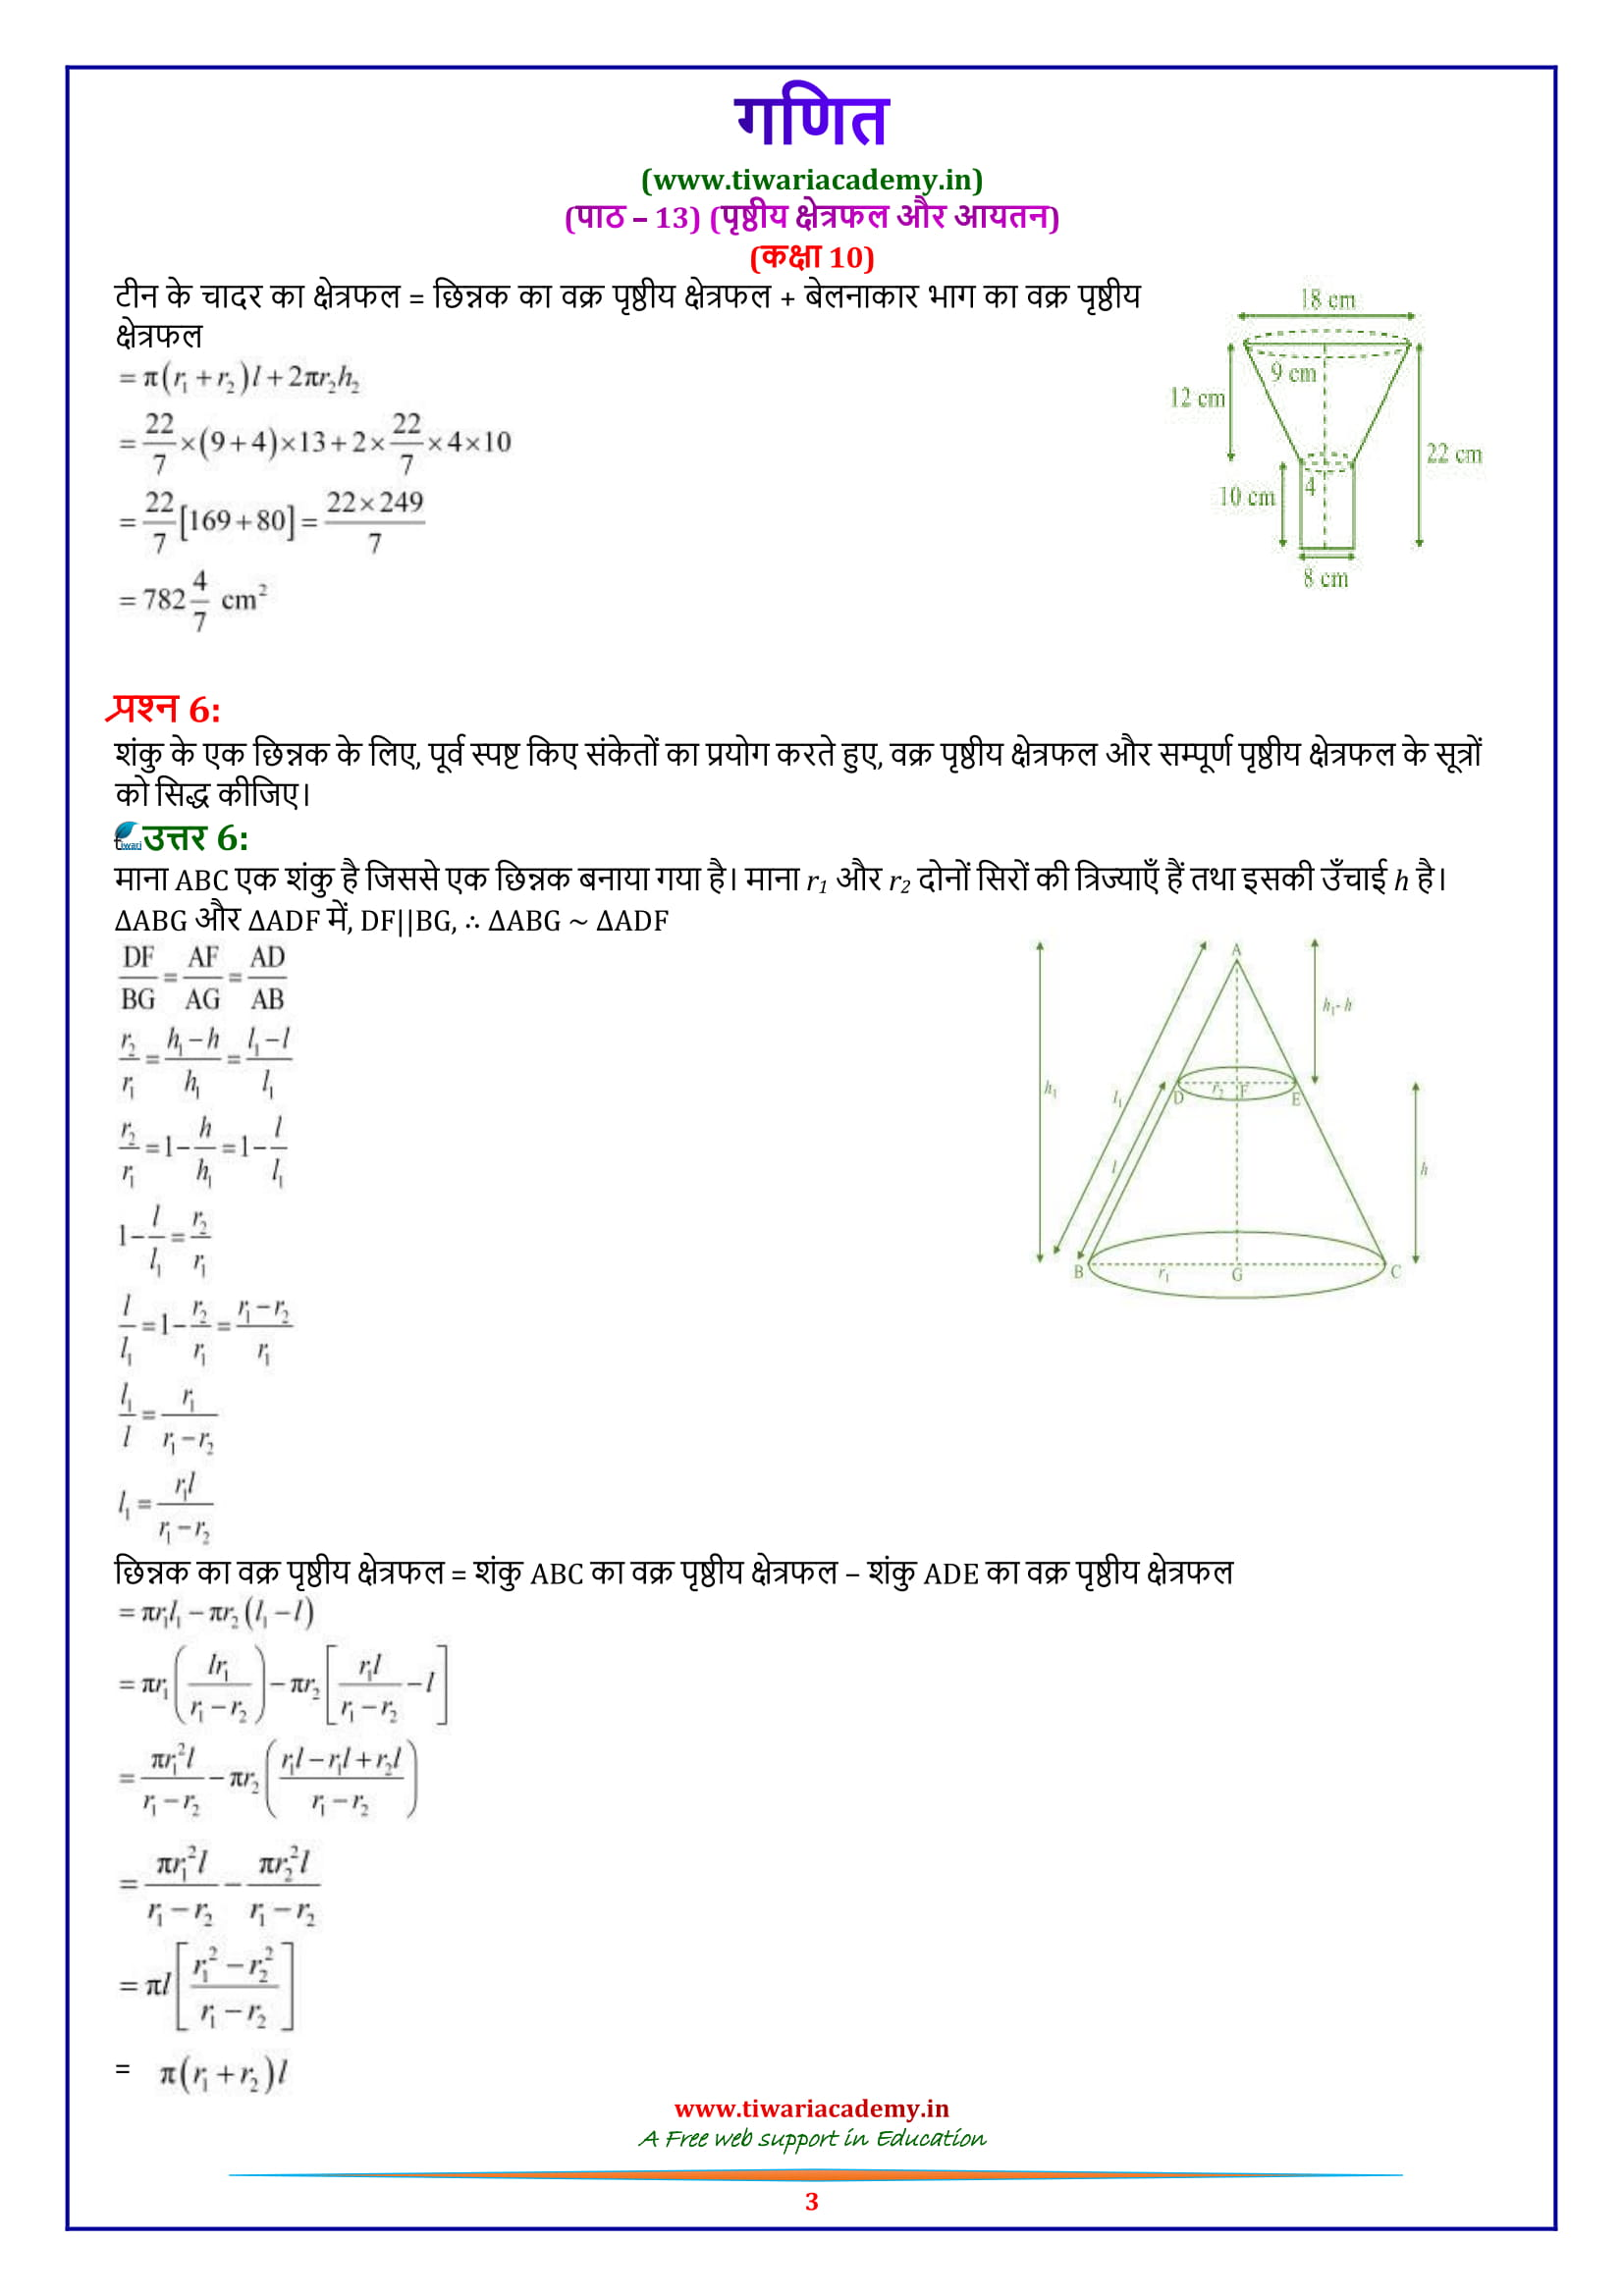 Class 10 Maths optional exercise 13.5 solutions of all questions